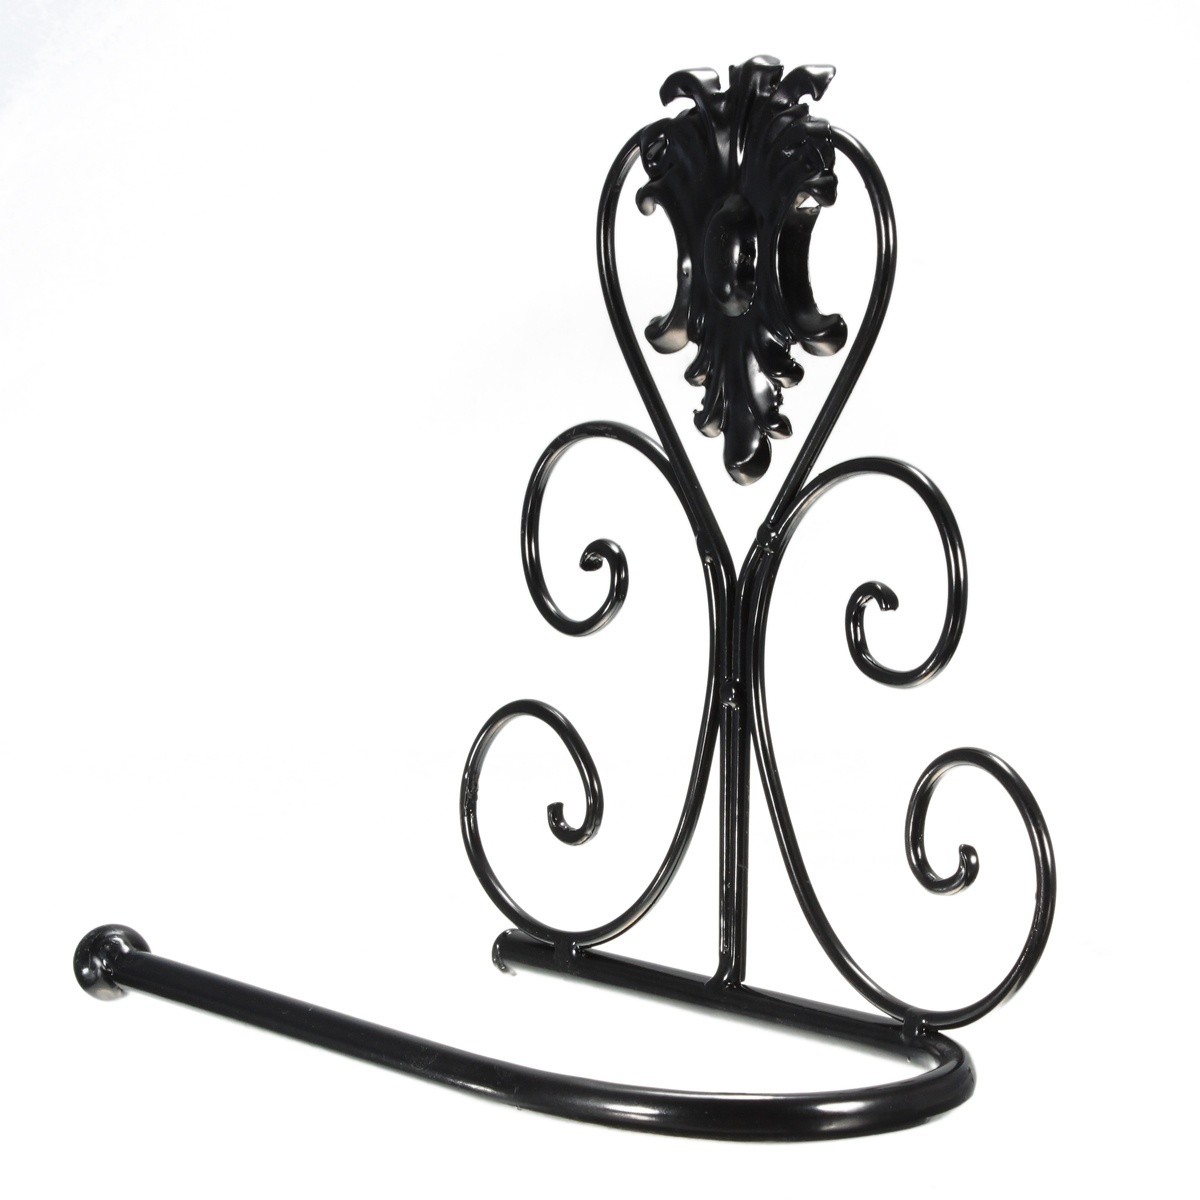 Vintage Classical Iron Toilet Paper Towel Roll Holder Bathroom Wall Mount Rack